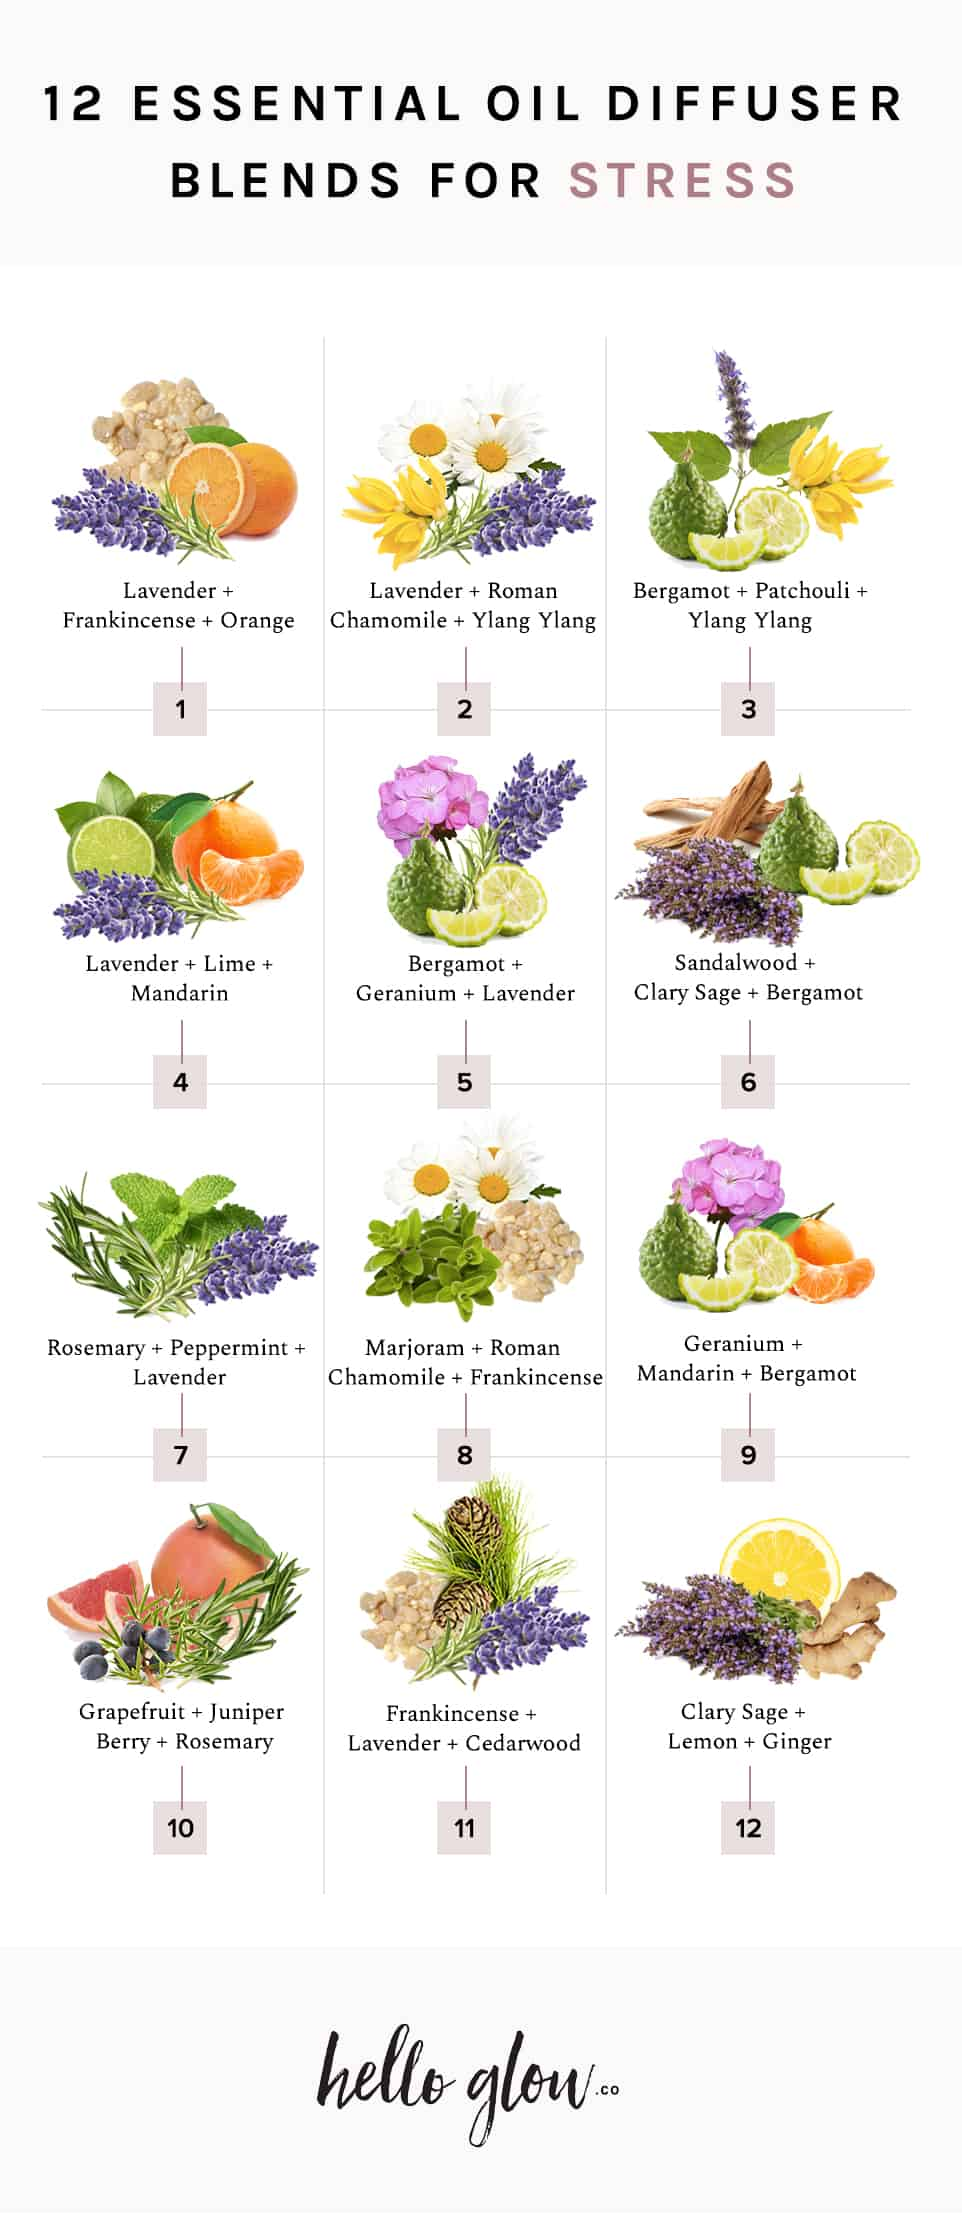 12 Essential Oil Blends for Stress - HelloGlow.co